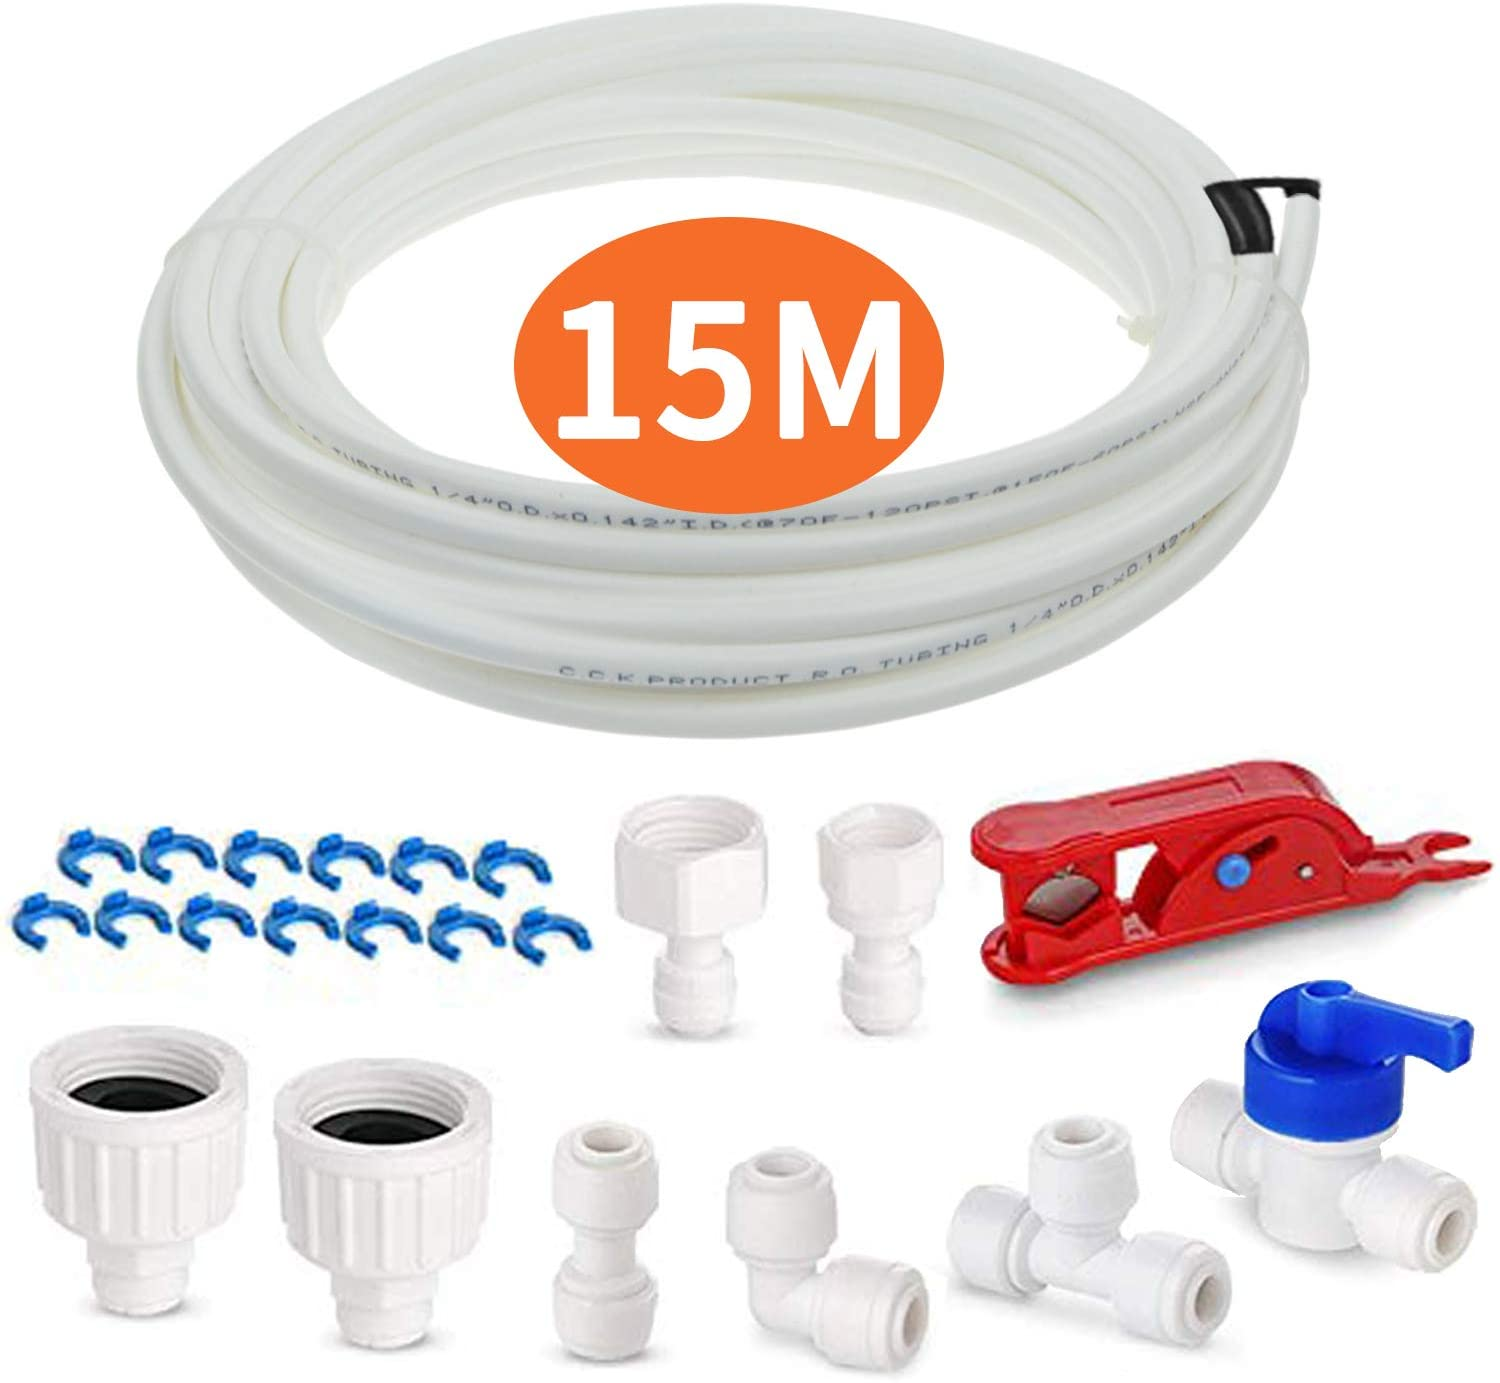 "Fridge Water Pipe Tube with Connector Fittings Kit, AOBETAK 15M Fridge Freezer Water Filter Plumbing Set For European and American Style Double Fridge Refrigerator (1/4"" Pipe)"